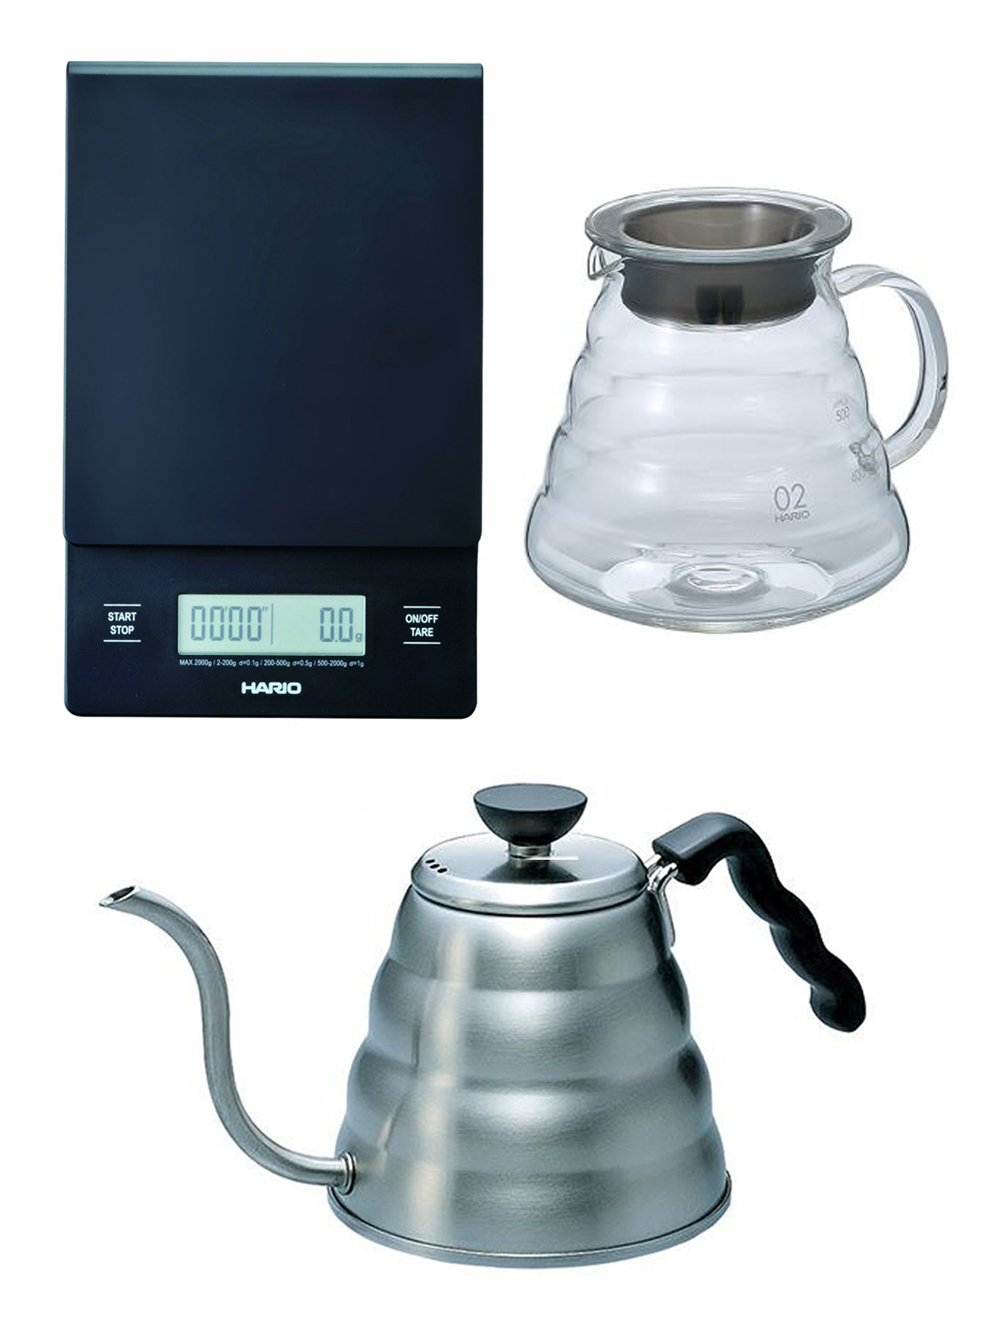 Hario V60 Series Set of Three: Scale, Glass Kettle & Metal Kettle All Sold Together